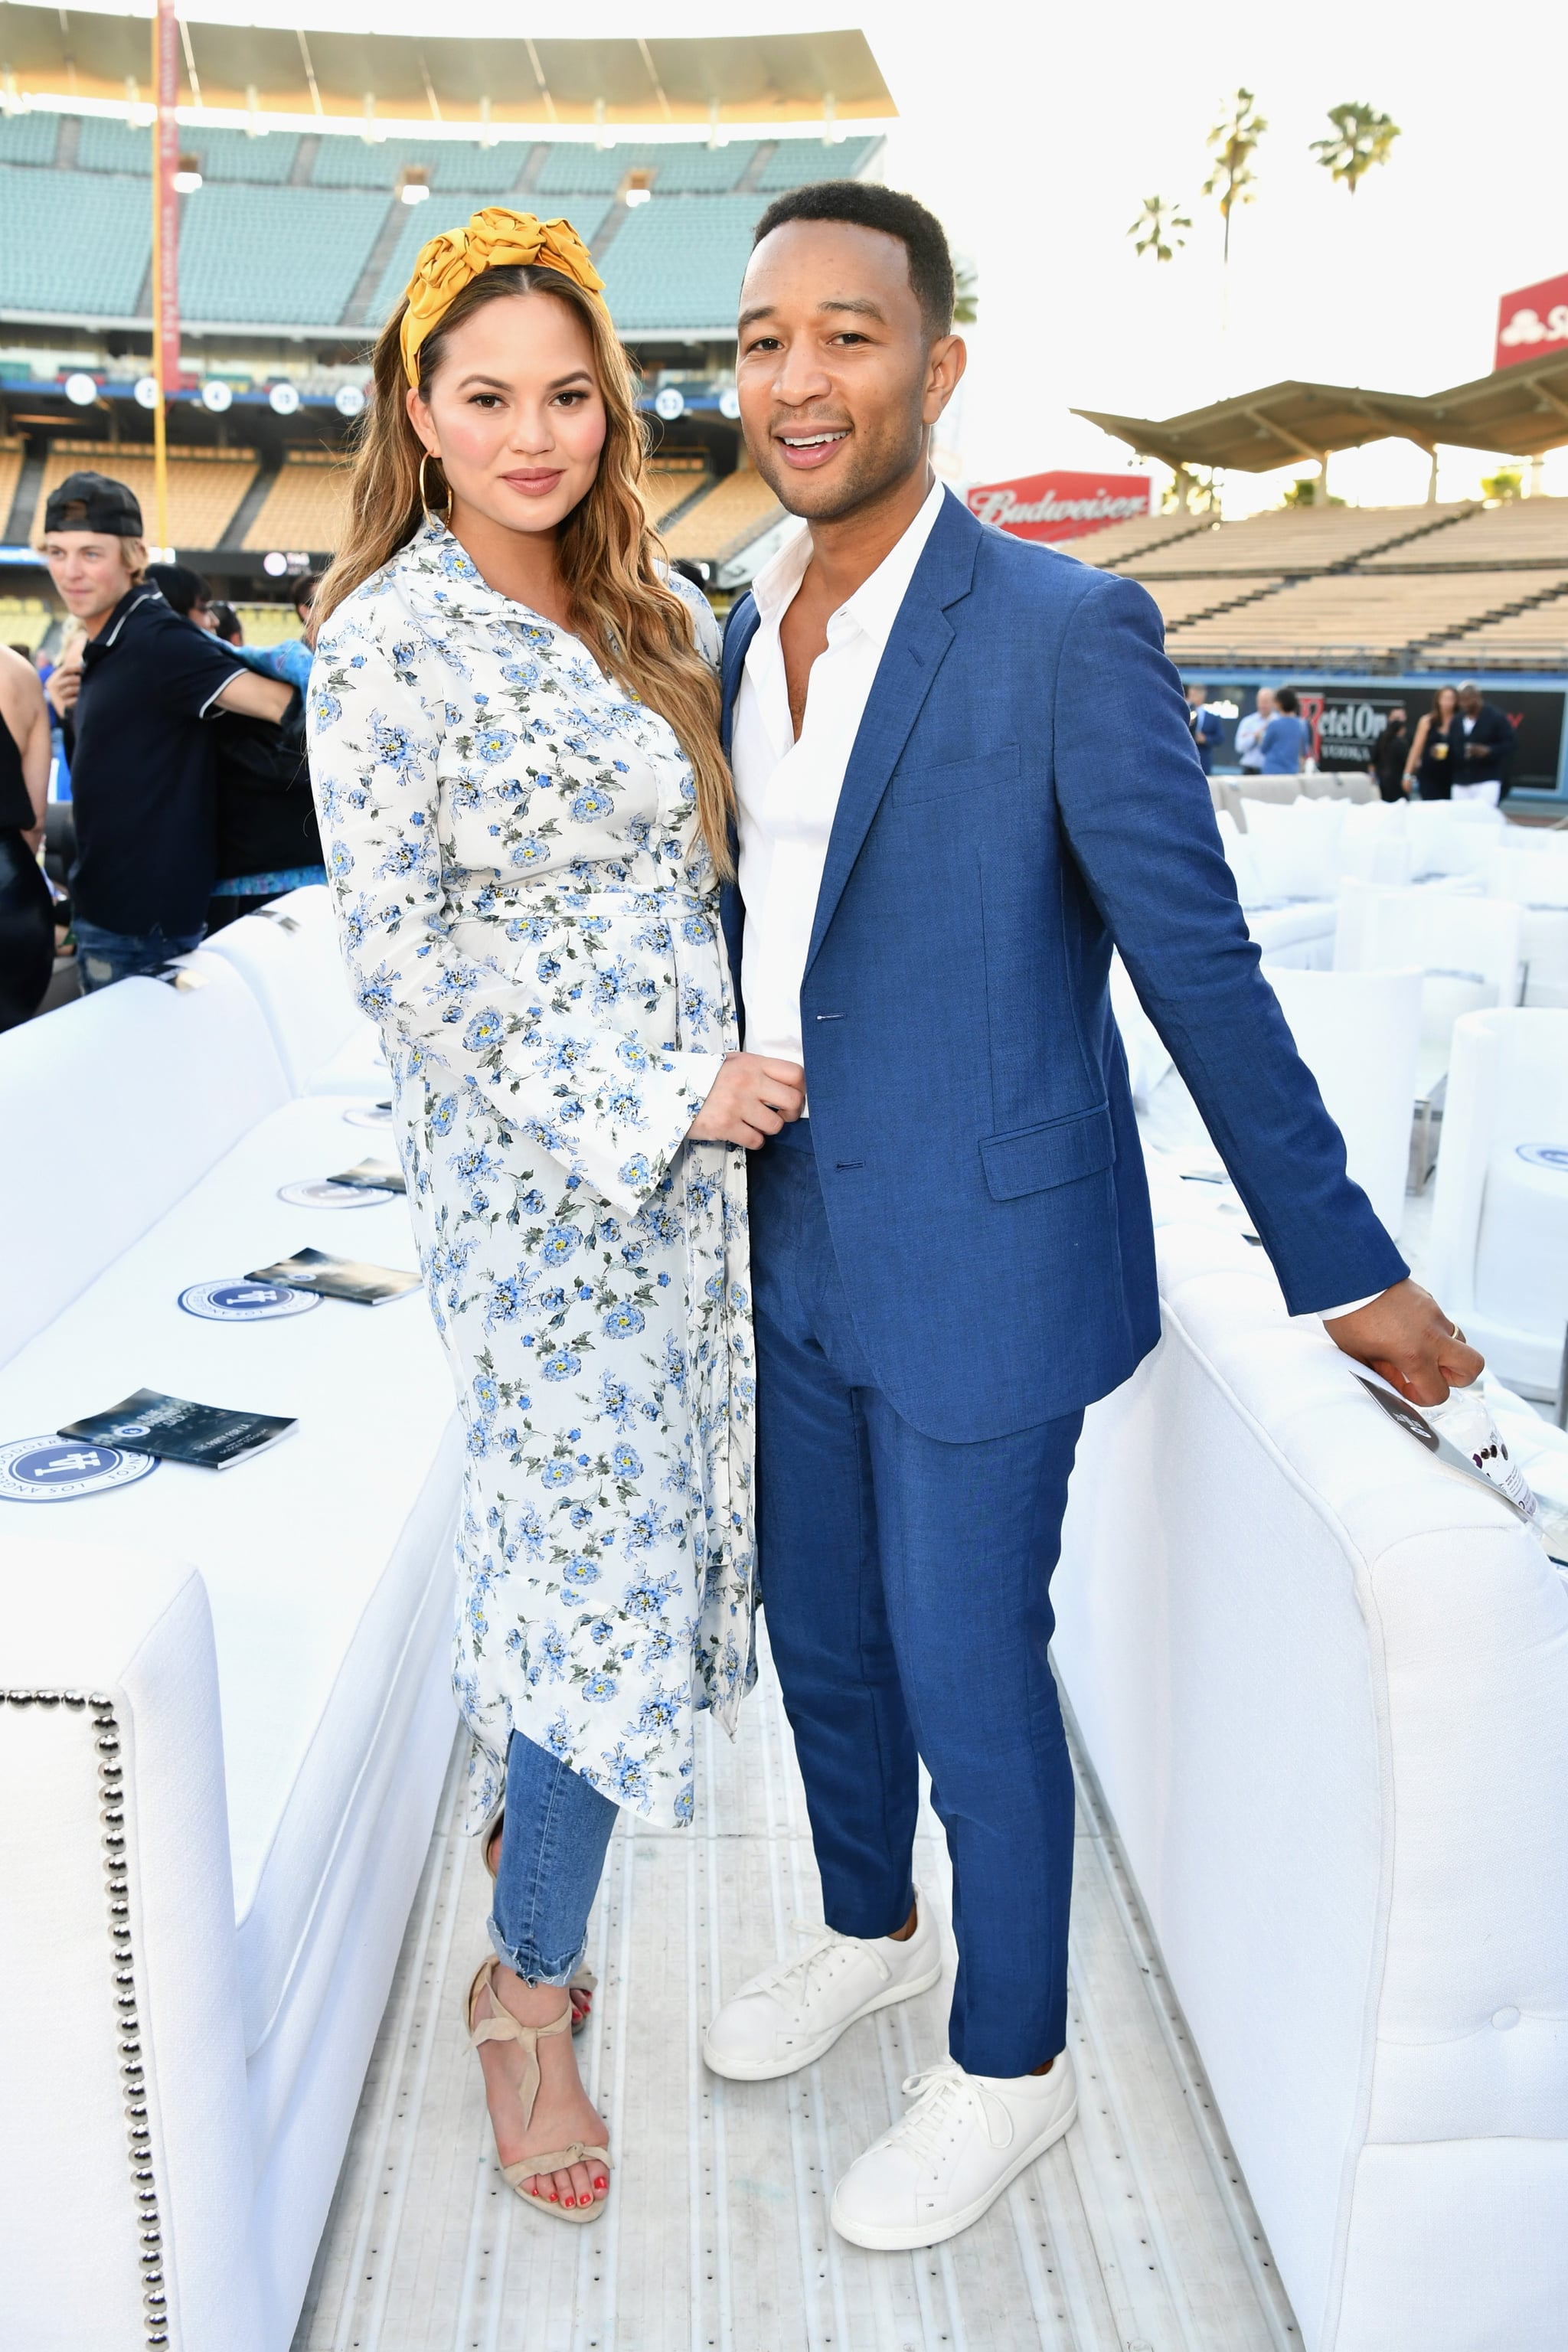 LOS ANGELES, CA - JUNE 11:  Chrissy Teigen and John Legend attend the Fourth Annual Los Angeles Dodgers Foundation Blue Diamond Gala at Dodger Stadium on June 11, 2018 in Los Angeles, California.  (Photo by Emma McIntyre/Getty Images for Los Angeles Dodgers Foundation )